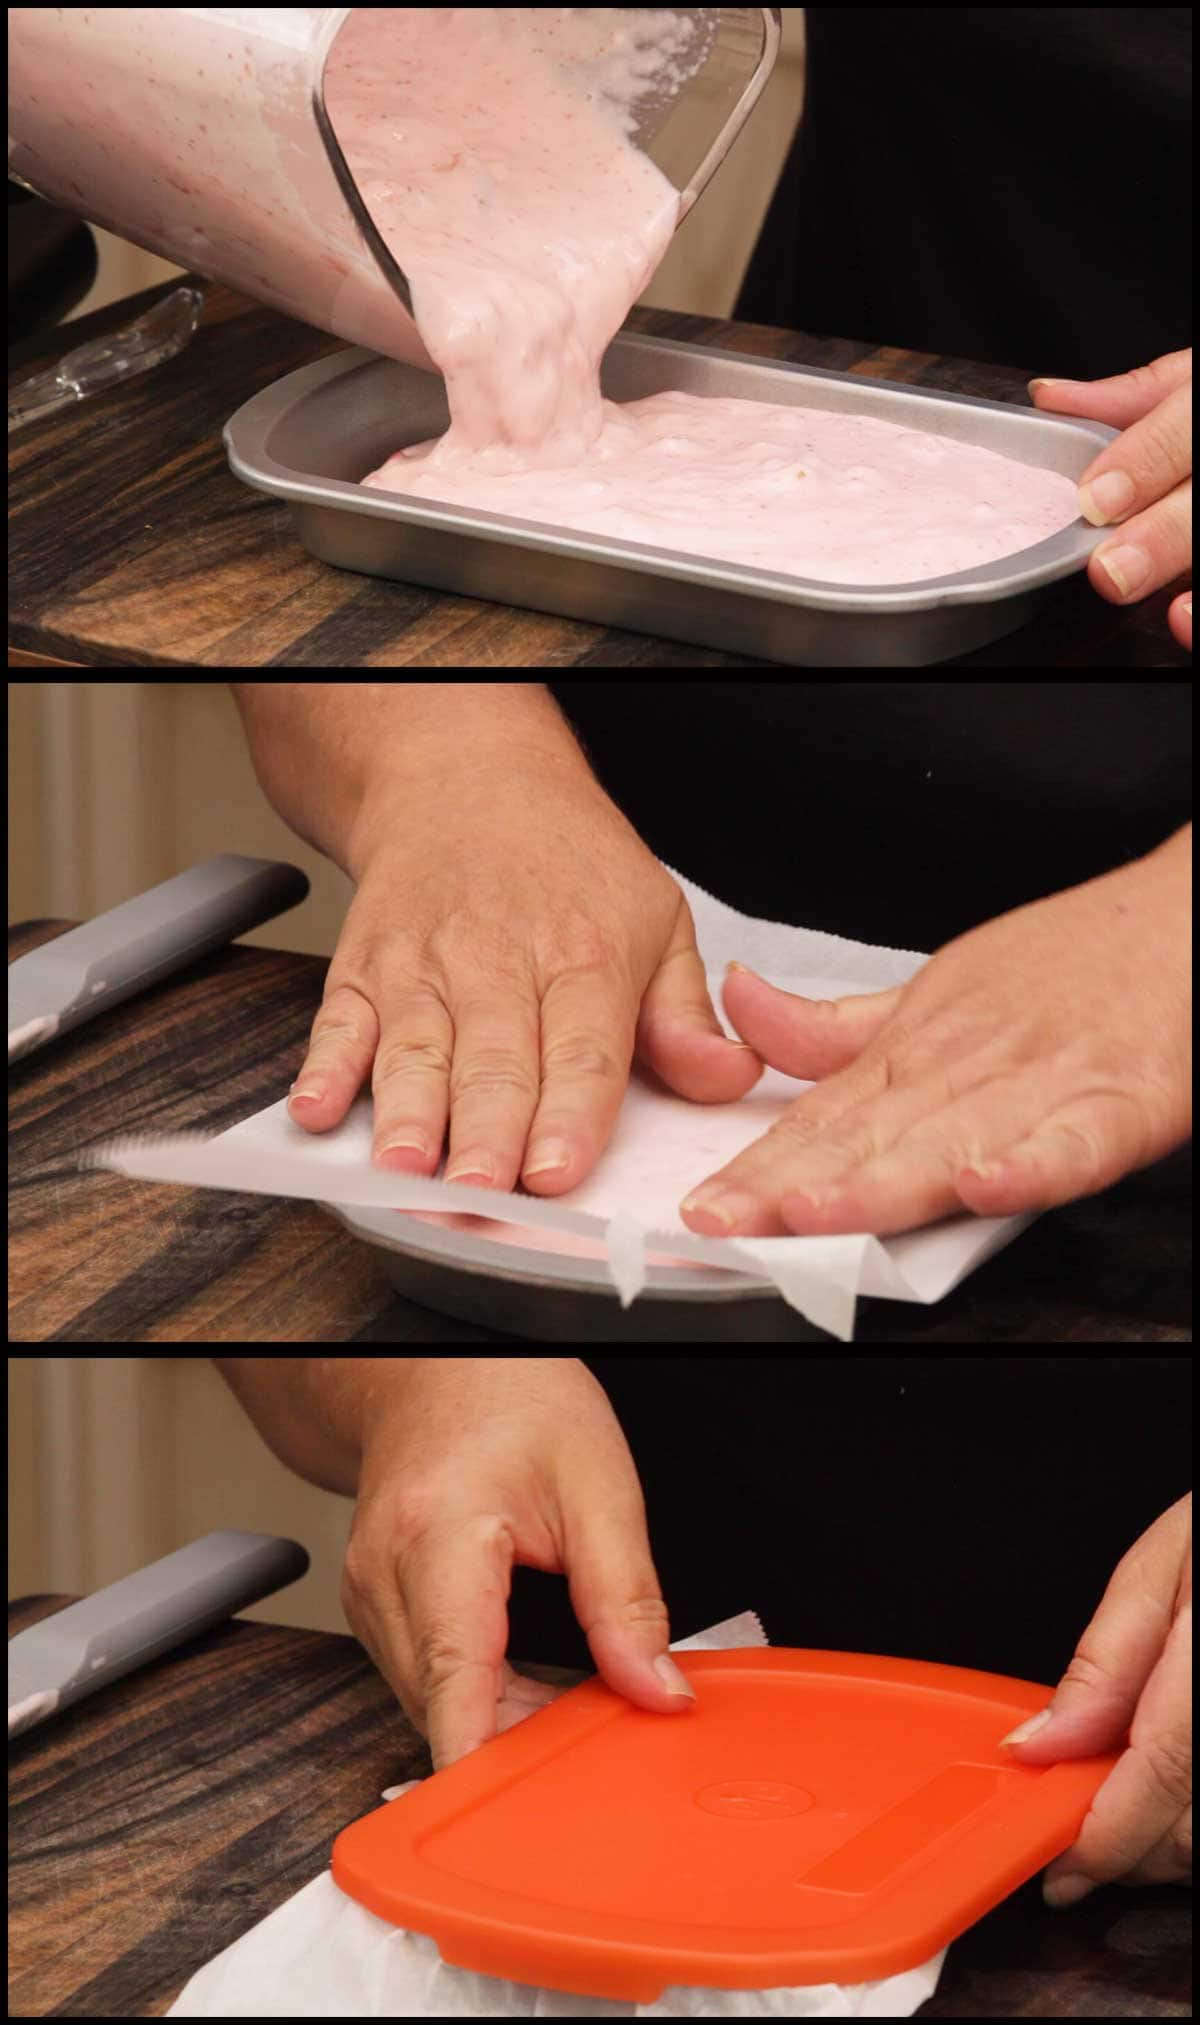 putting ice cream into container and covering with parchment and lid for freezing